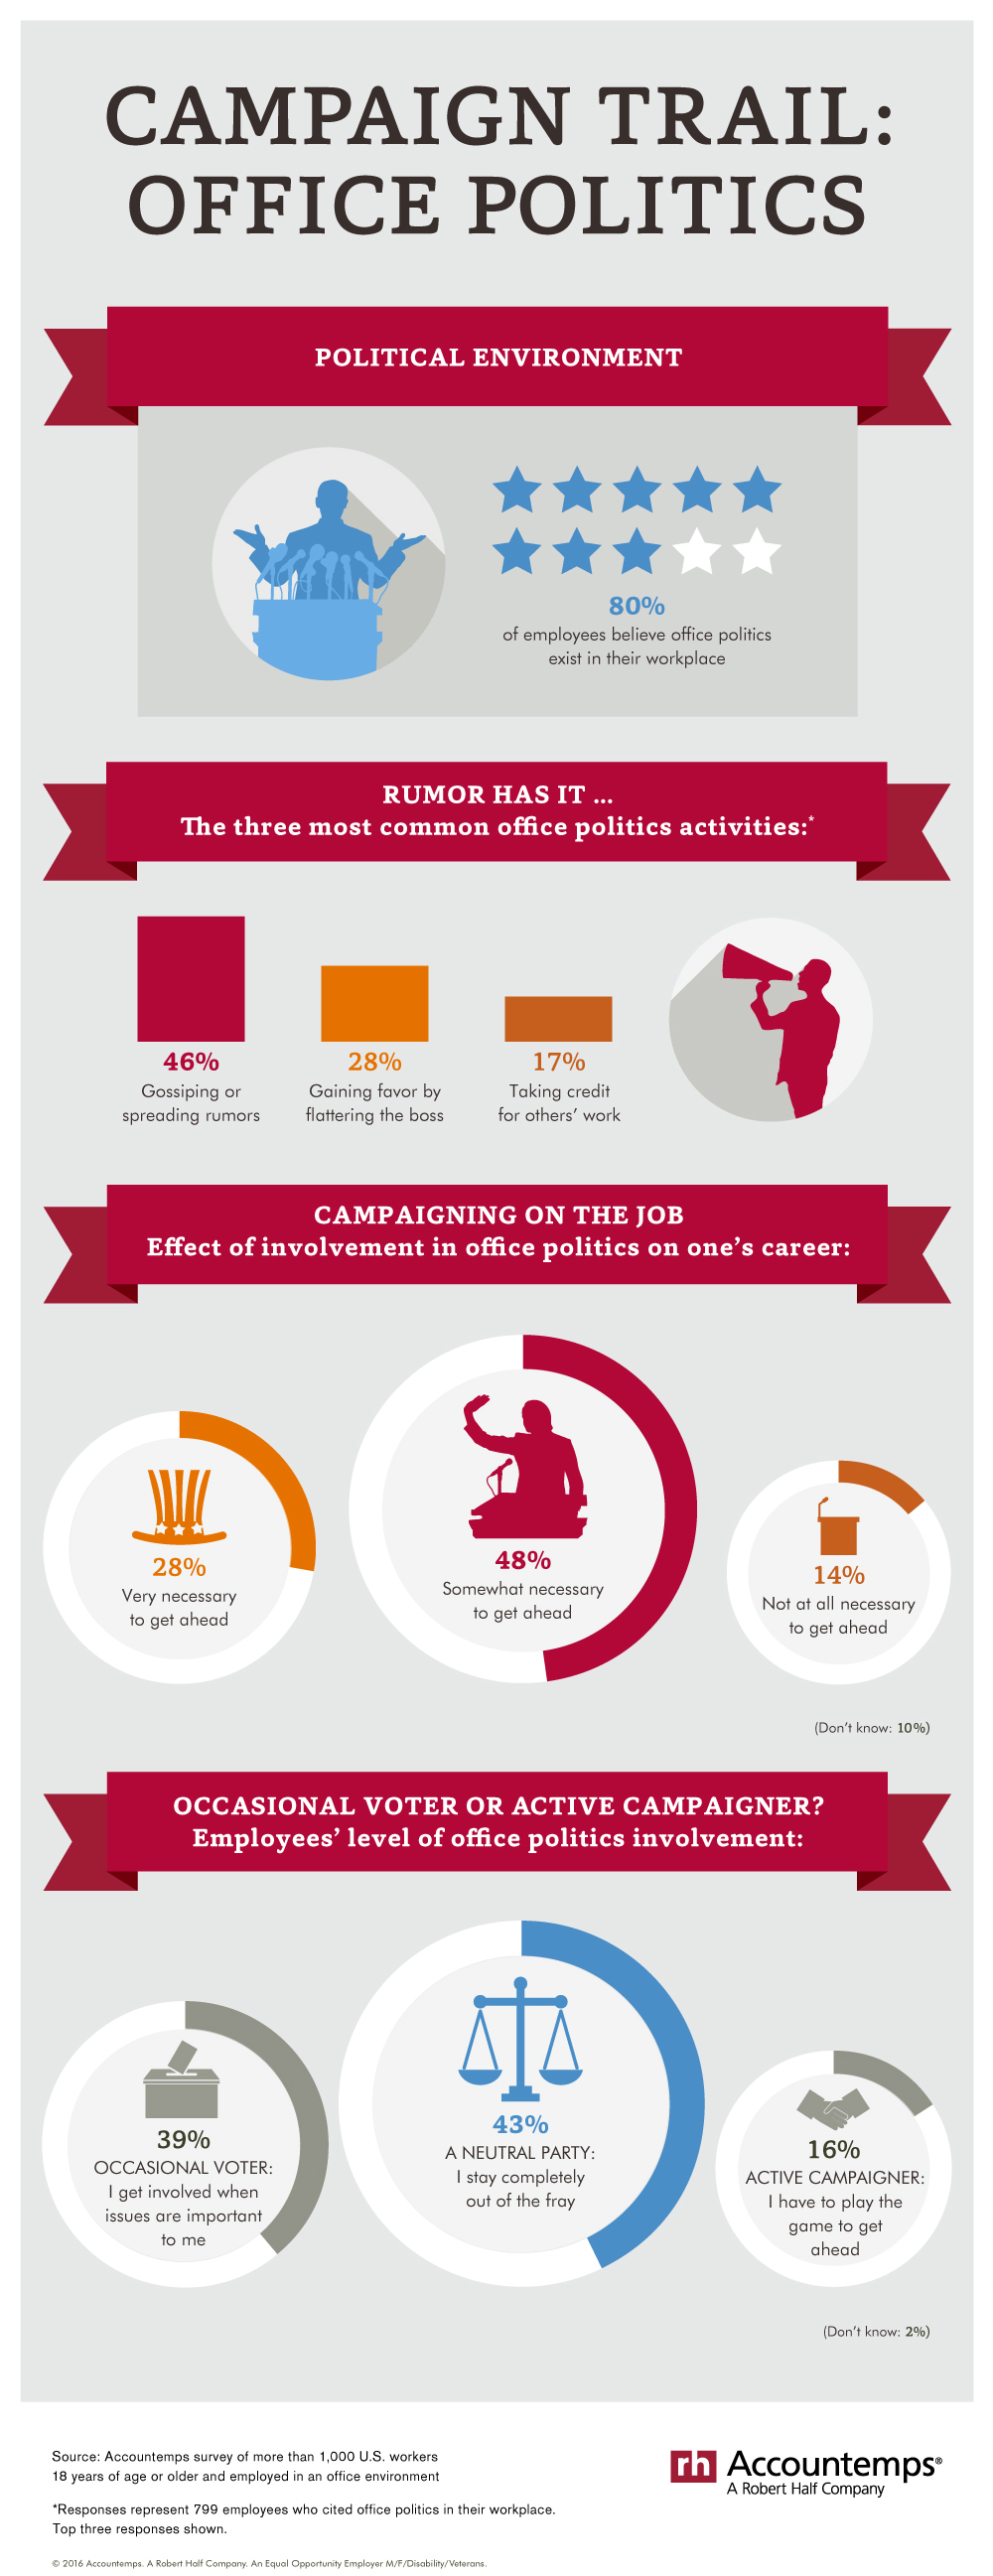 Eighty percent of workers believe office politics exist. Here's how they describe their involvement.